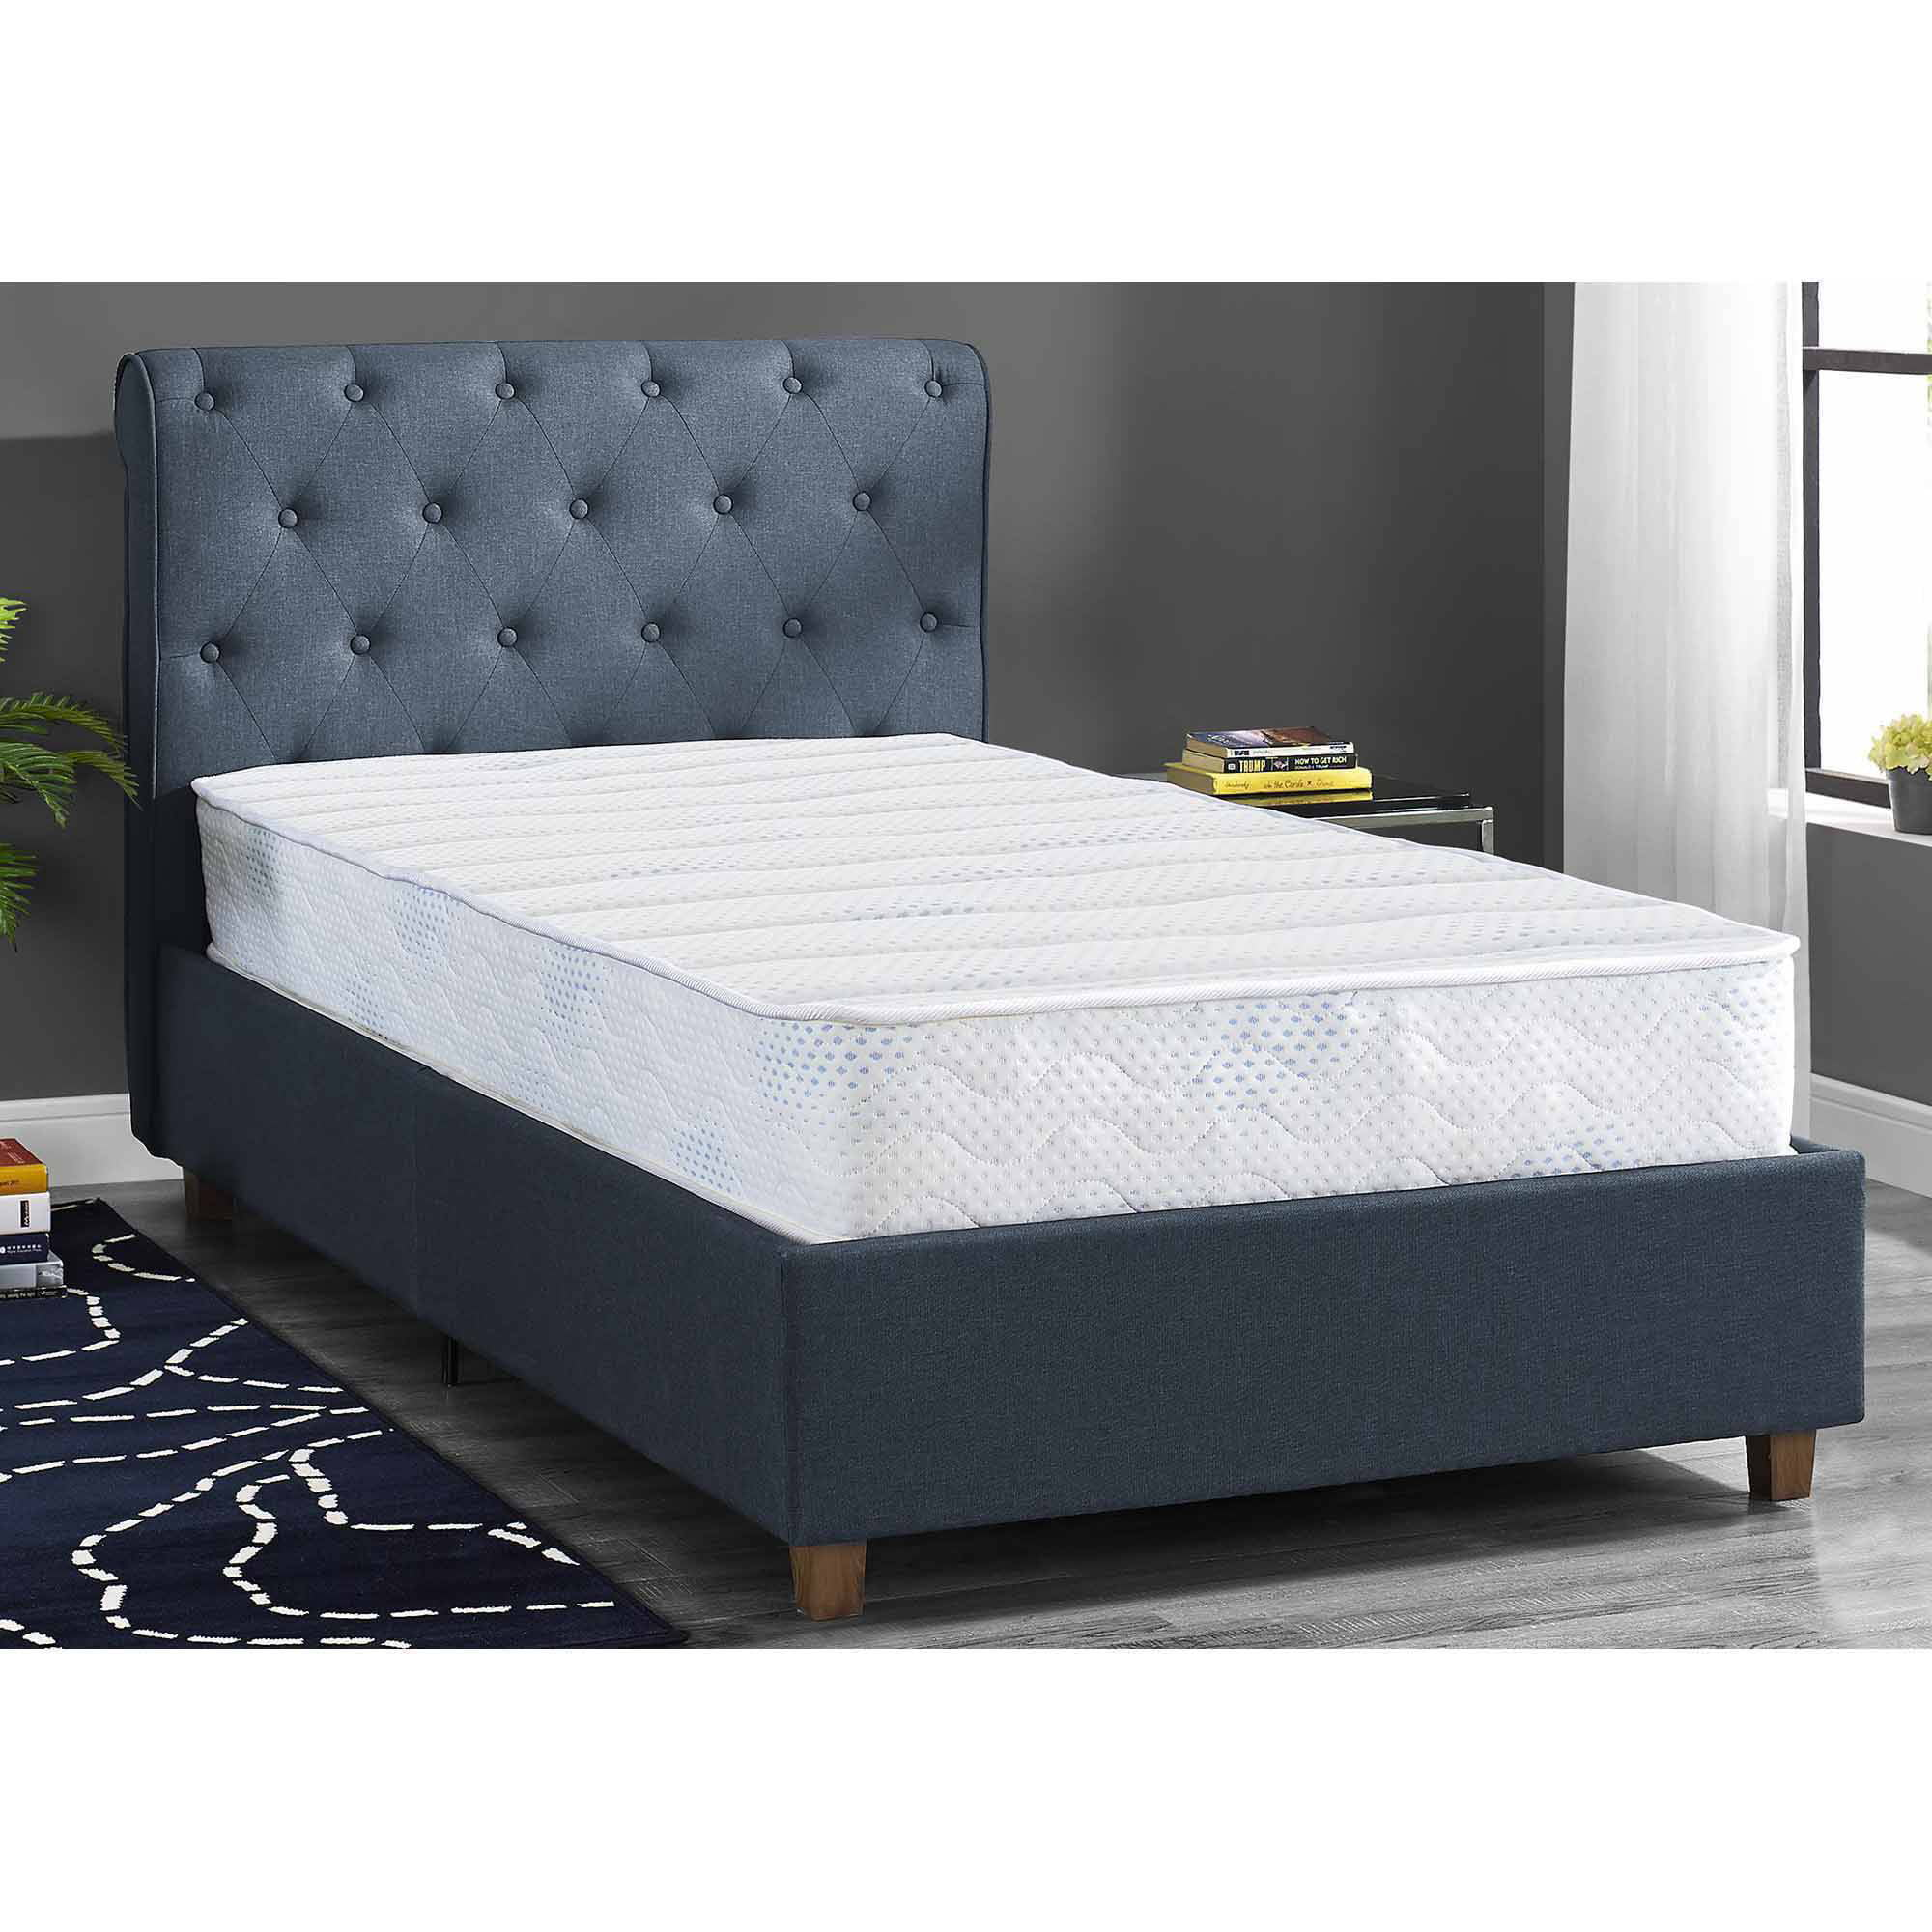 "Mainstays 8"" Independently Encased Coil Mattress, Multiple Sizes by Dorel Home Products"